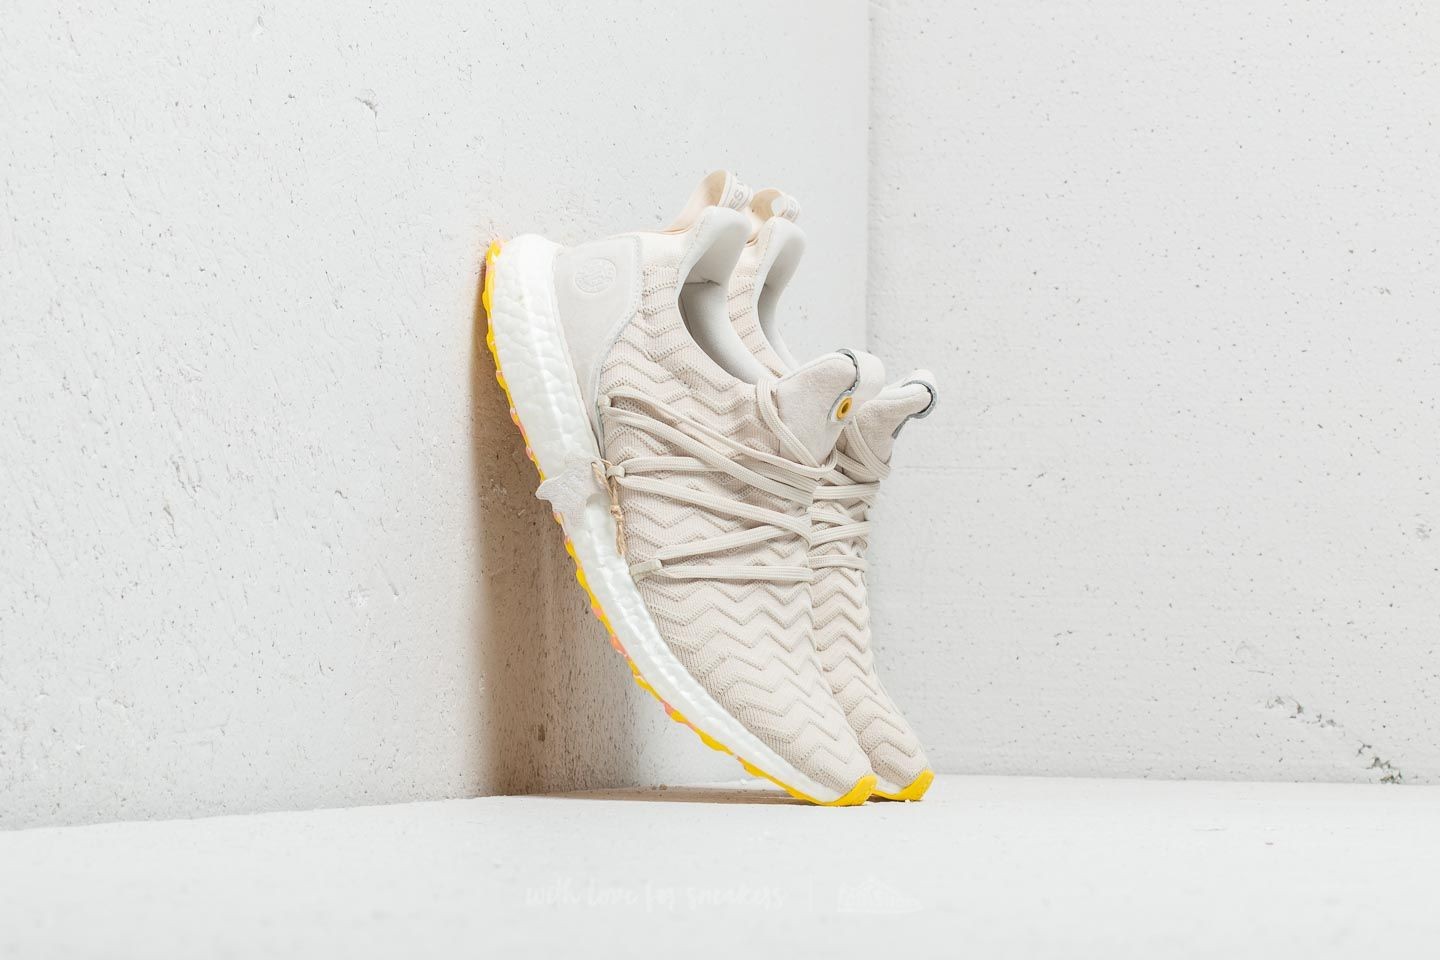 10be6bd0c40 adidas Consortium x A Kind of Guise UltraBOOST Chalk White  Yellow at a  great price